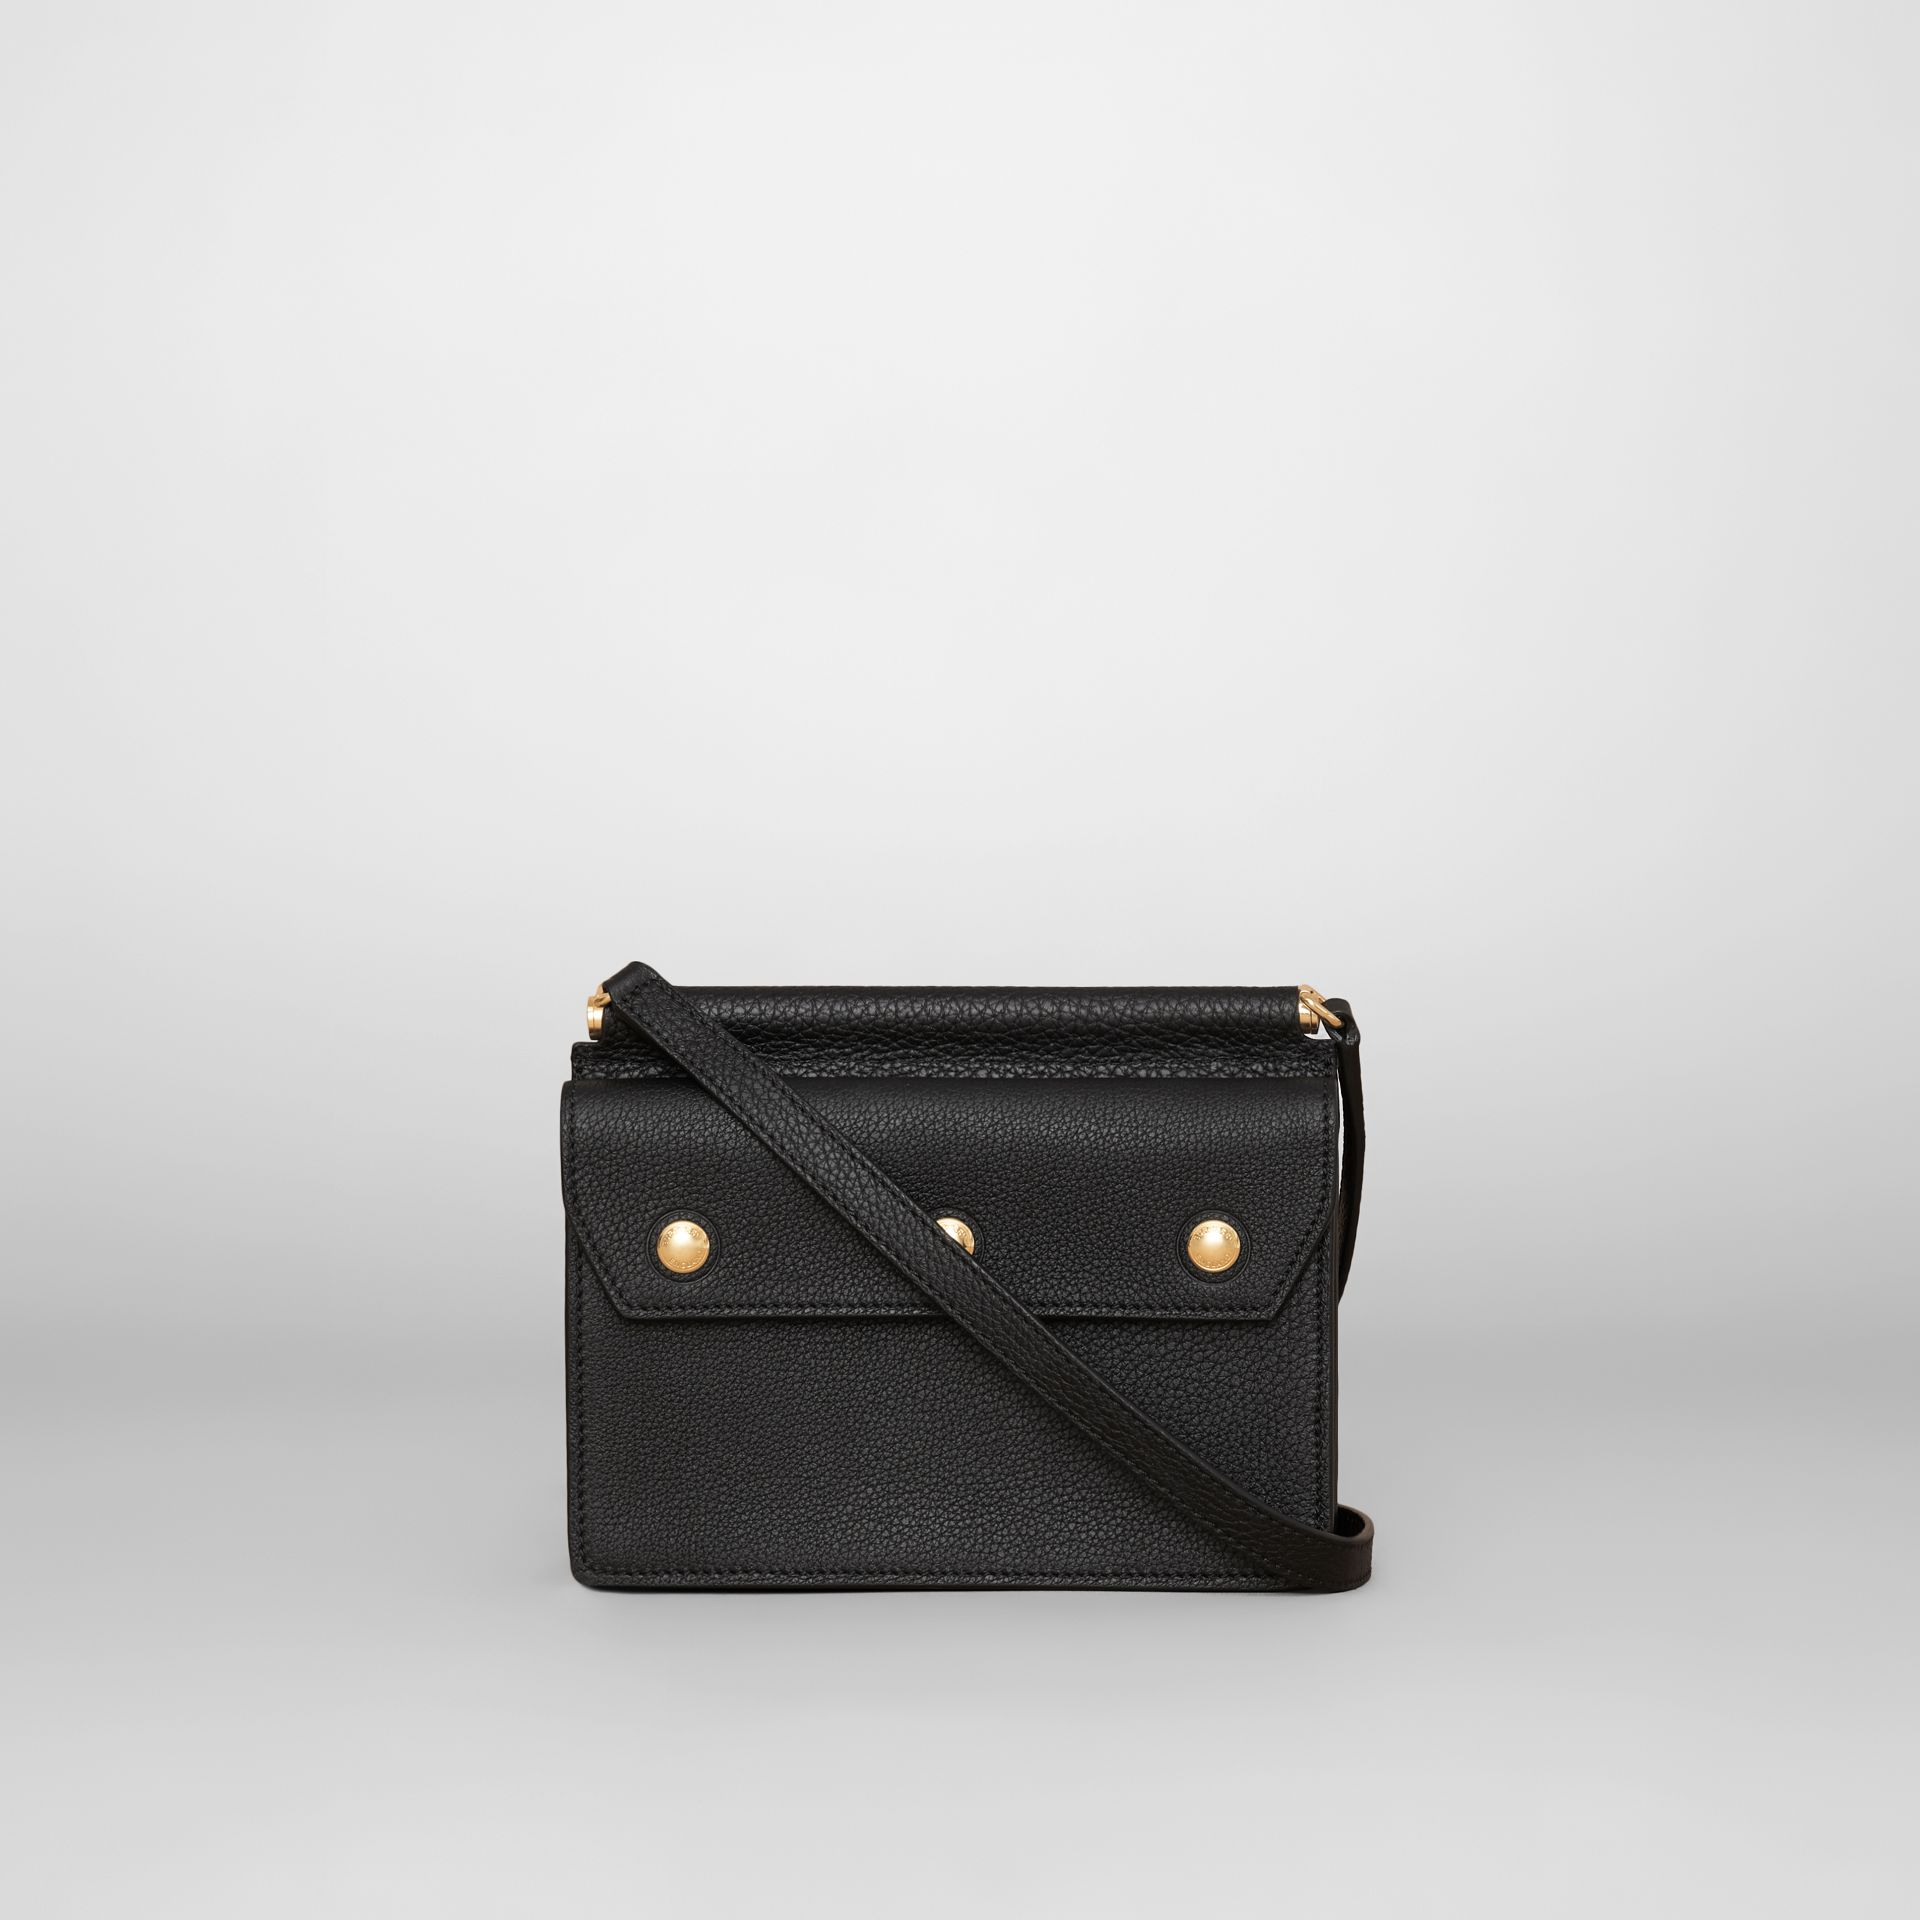 Mini Leather Title Bag in Black - Women | Burberry Hong Kong S.A.R. - gallery image 7